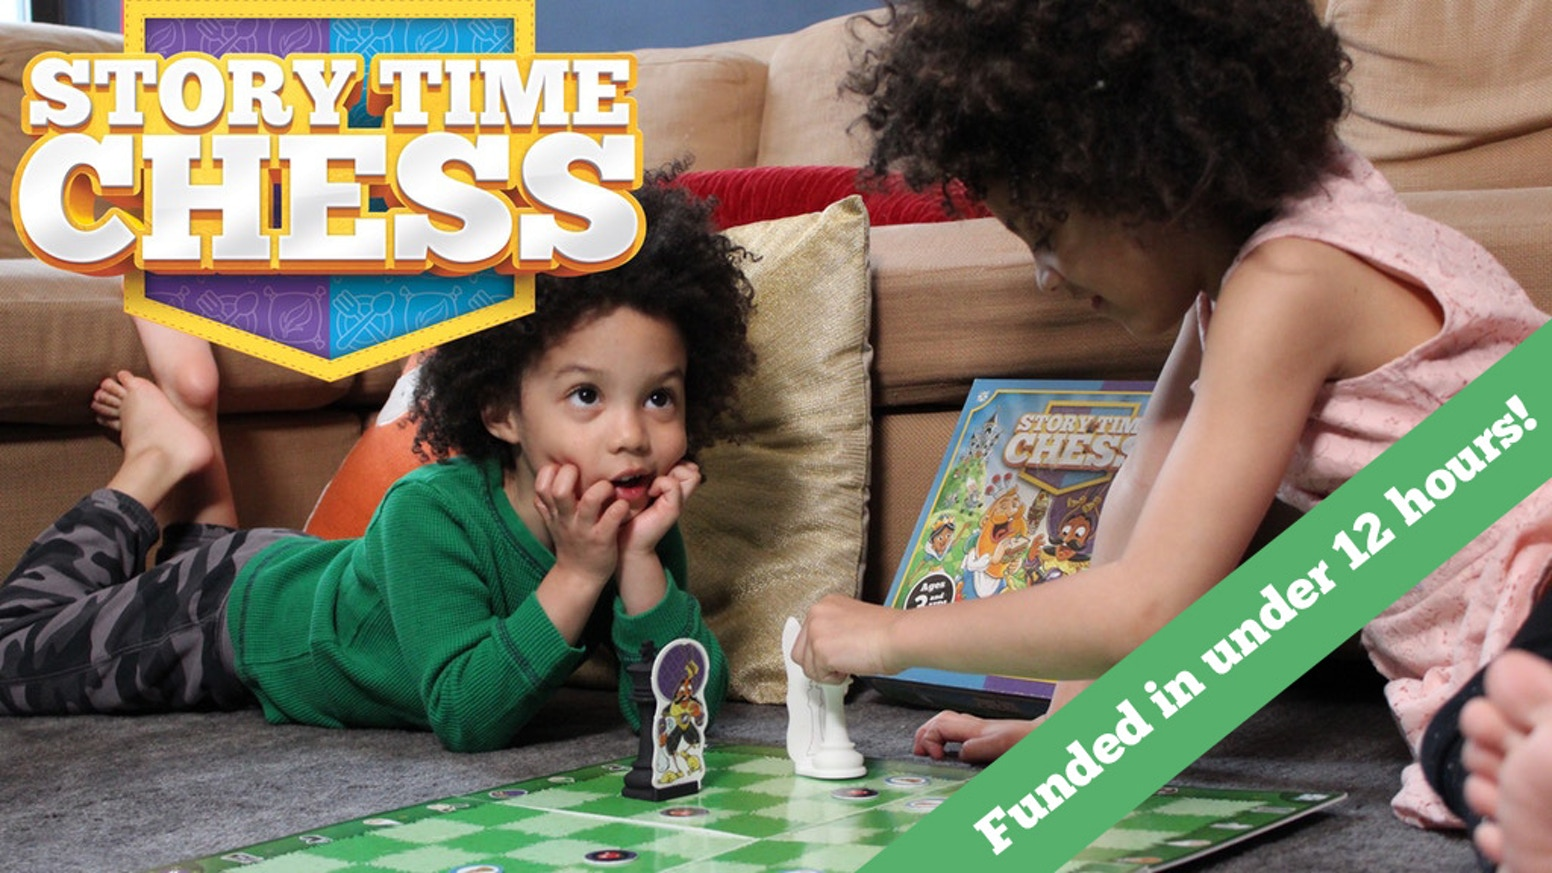 Help your child get ahead with silly, fun stories that teach children 3 and up how to play chess. No chess experience required.